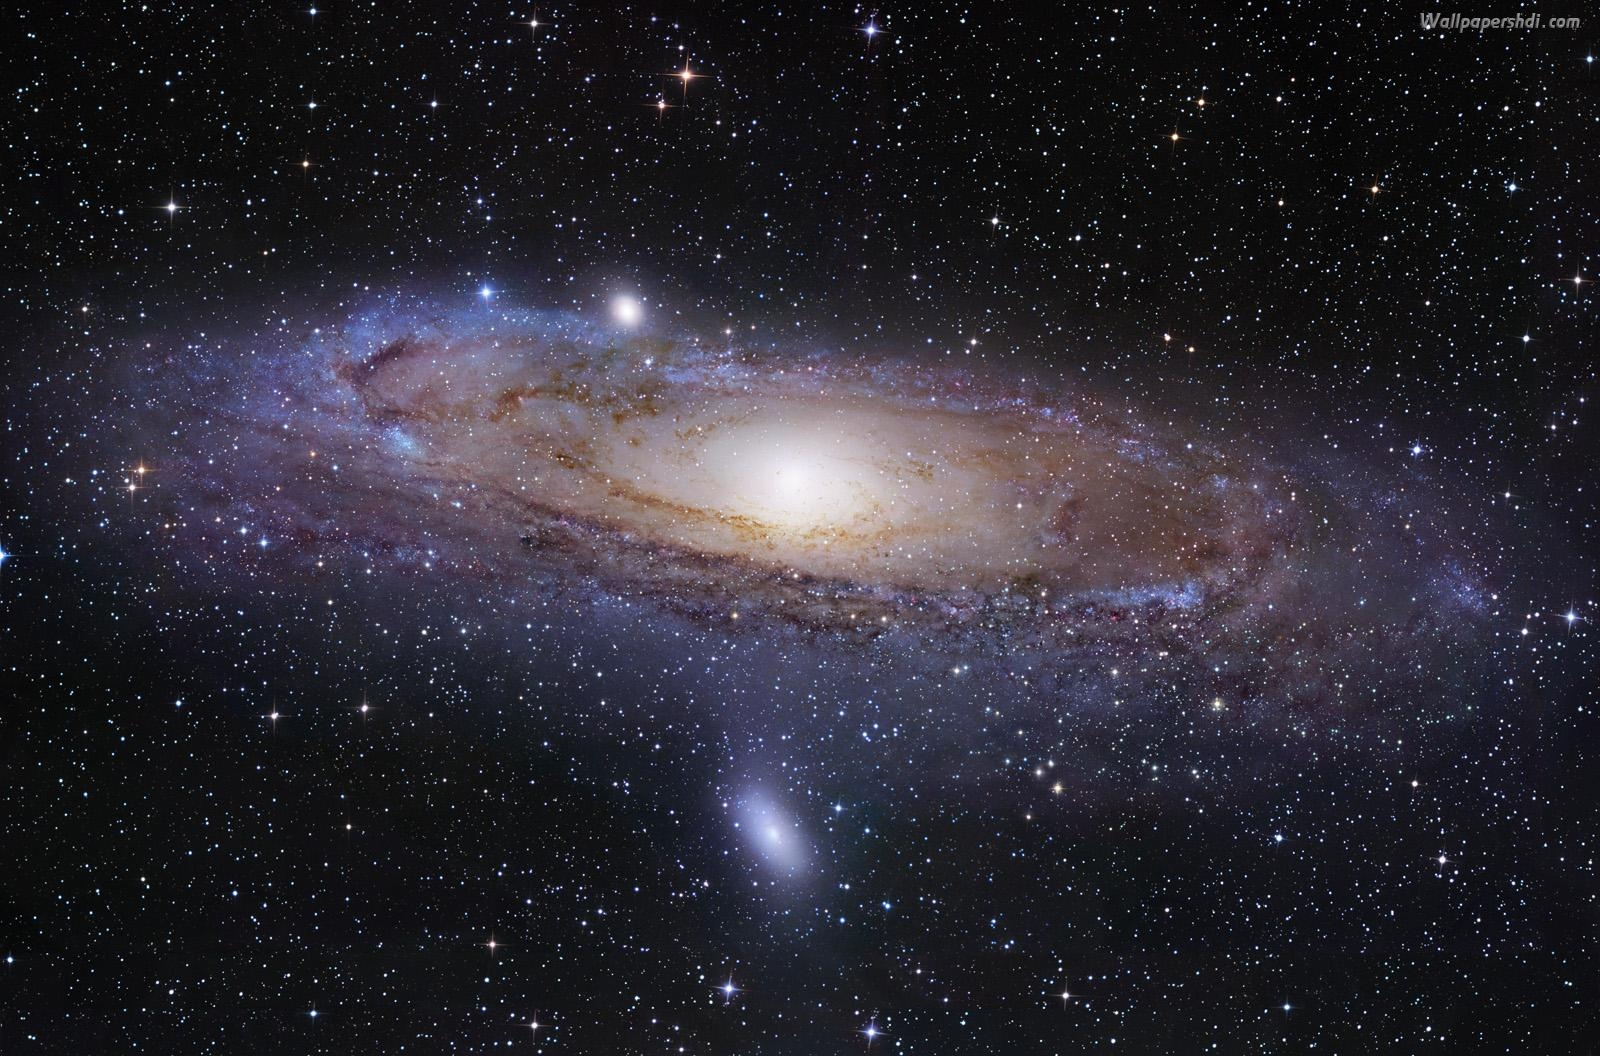 Andromeda Galaxy HD wallpaper wallpapers55com   Best Wallpapers for 1600x1056